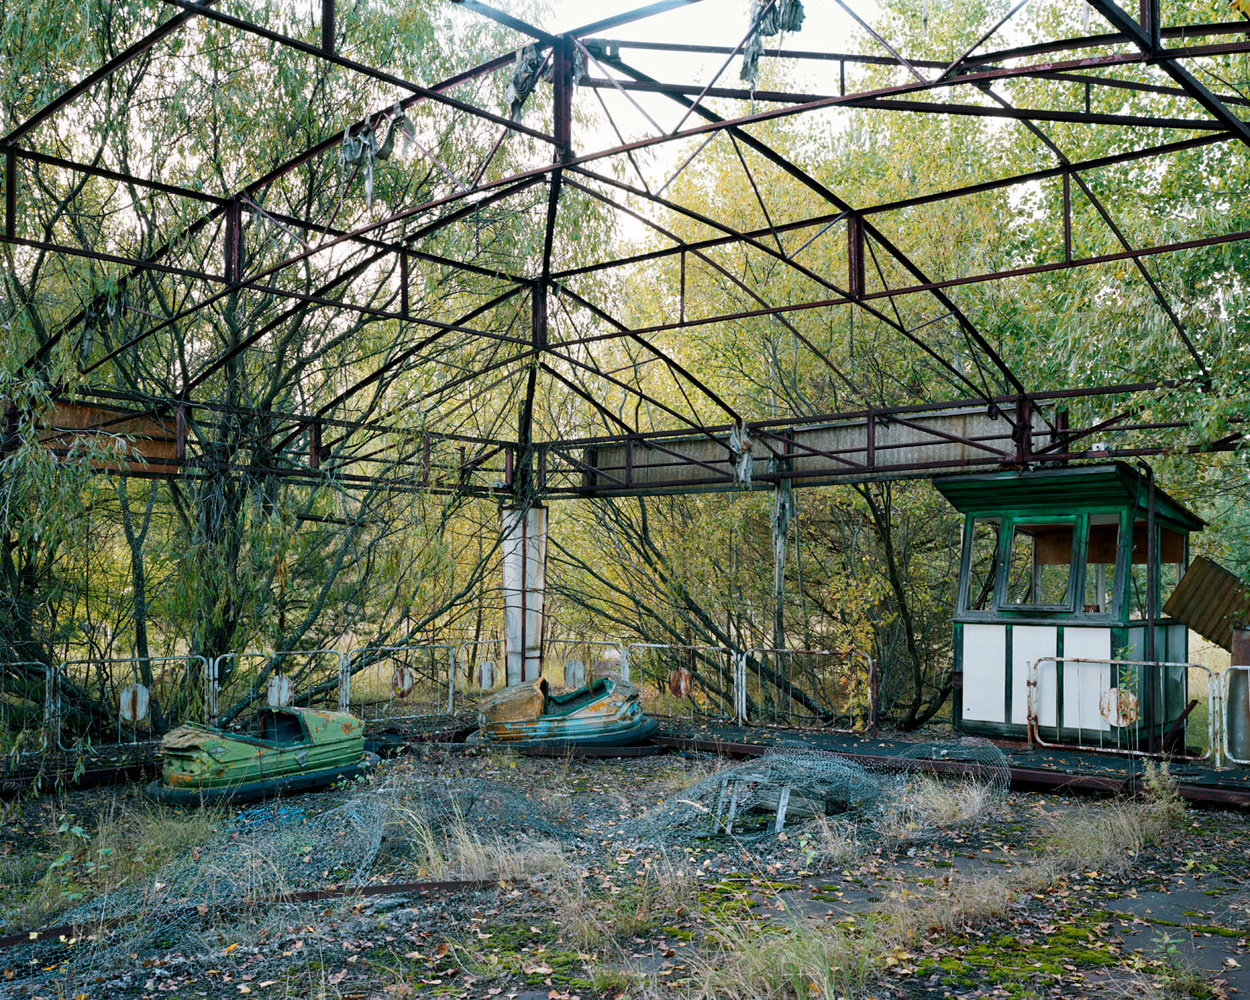 Trip to Chernobyl – Ukraine. 2008.Funfair in Prypiat, a fenced ghost town near Chernobyl. Tours take visitors to the closed zone within a radius of 30 km from Chernobyl station. Tourists can be photographed against the background of the 4th reactor.